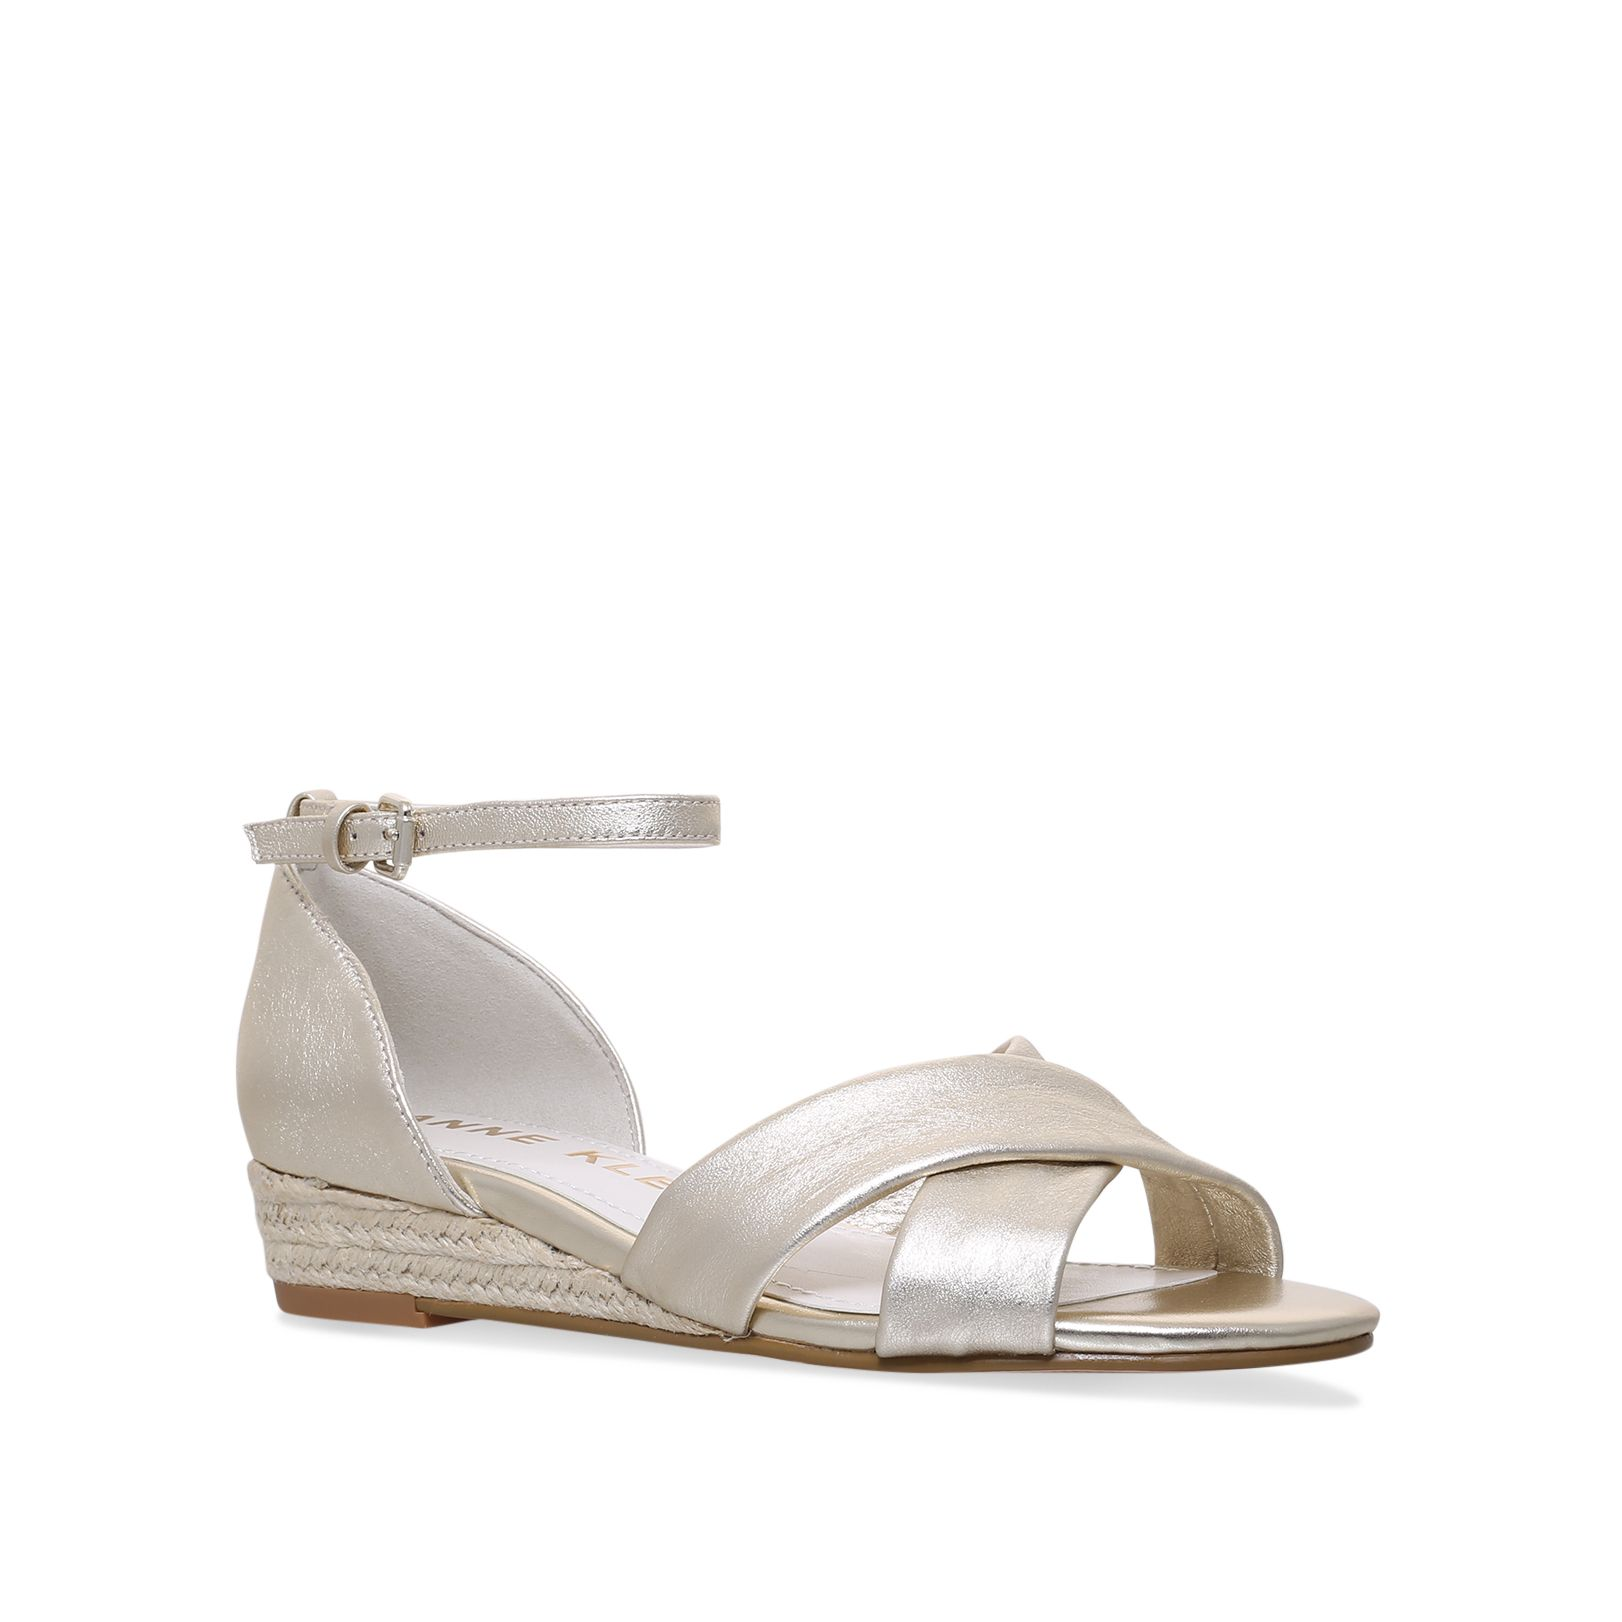 Anne Klein Nanetta Sandals, Gold Silverlic